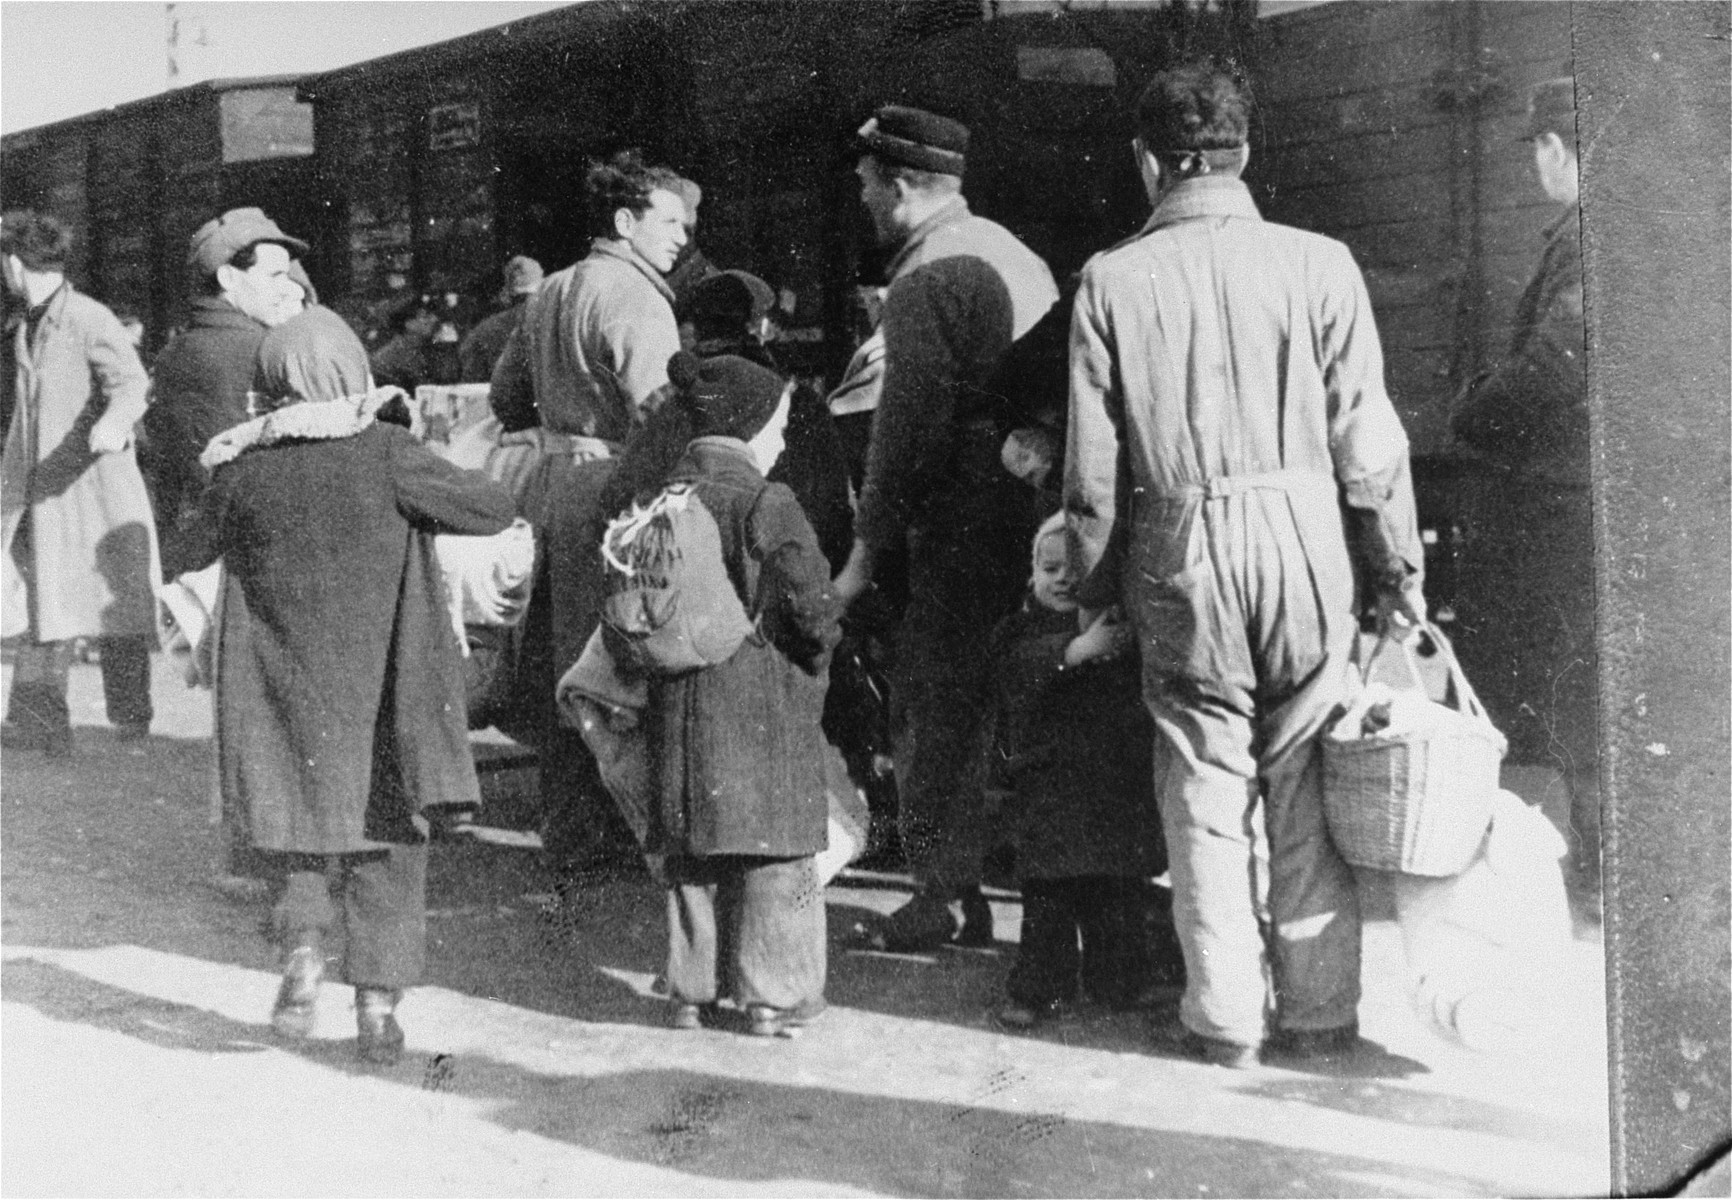 Members of the Ordedienst (Jewish police) supervise the deportation of Jews from the Westerbork transit camp.